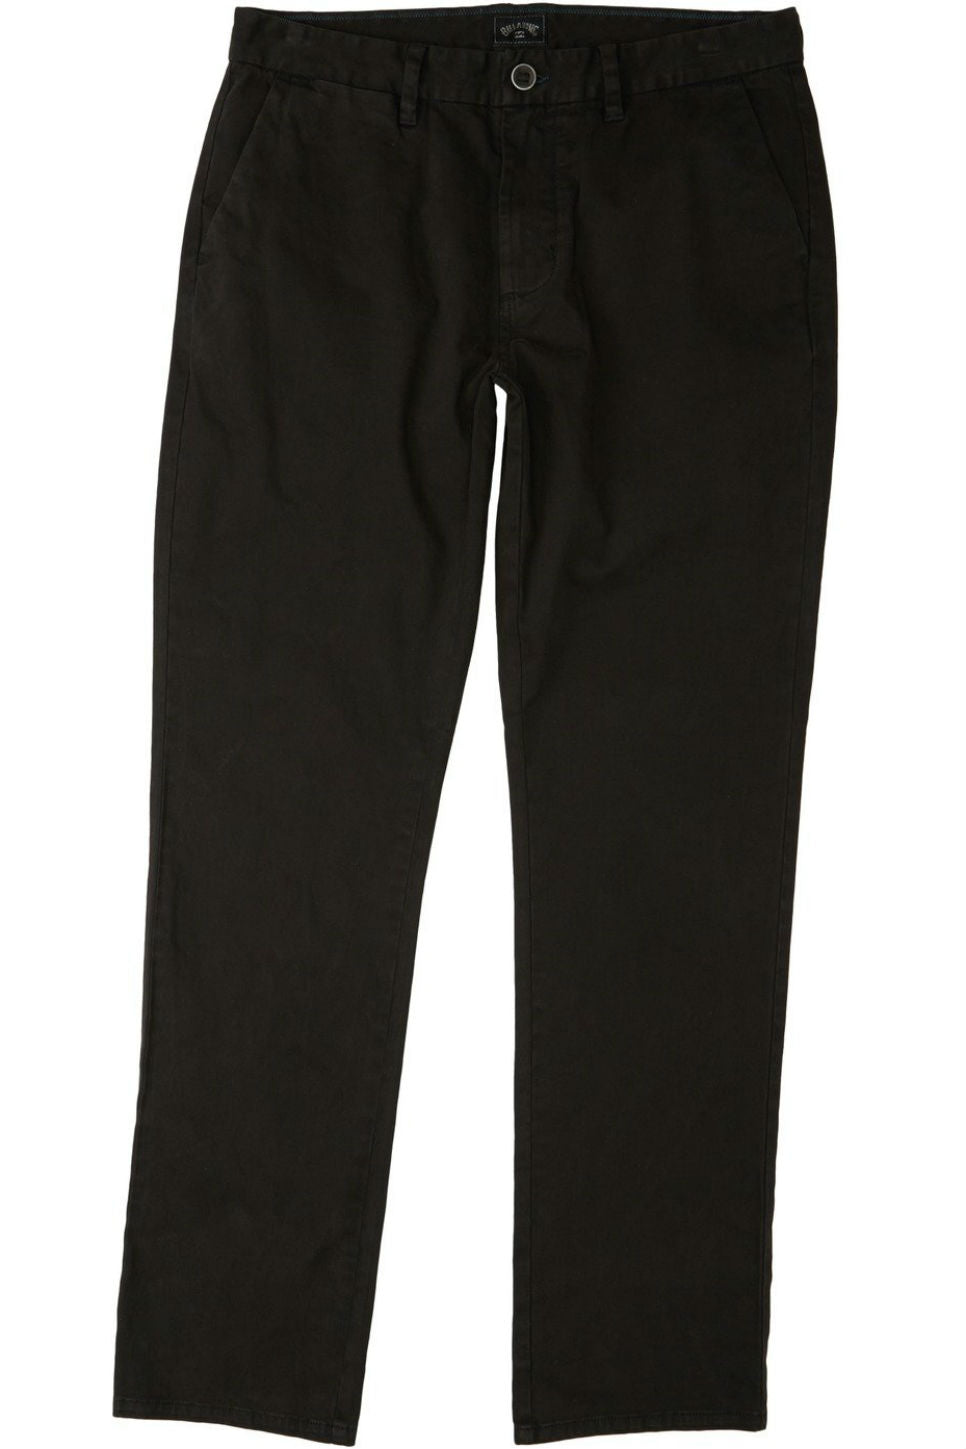 Billabong - 73 Chino - Black